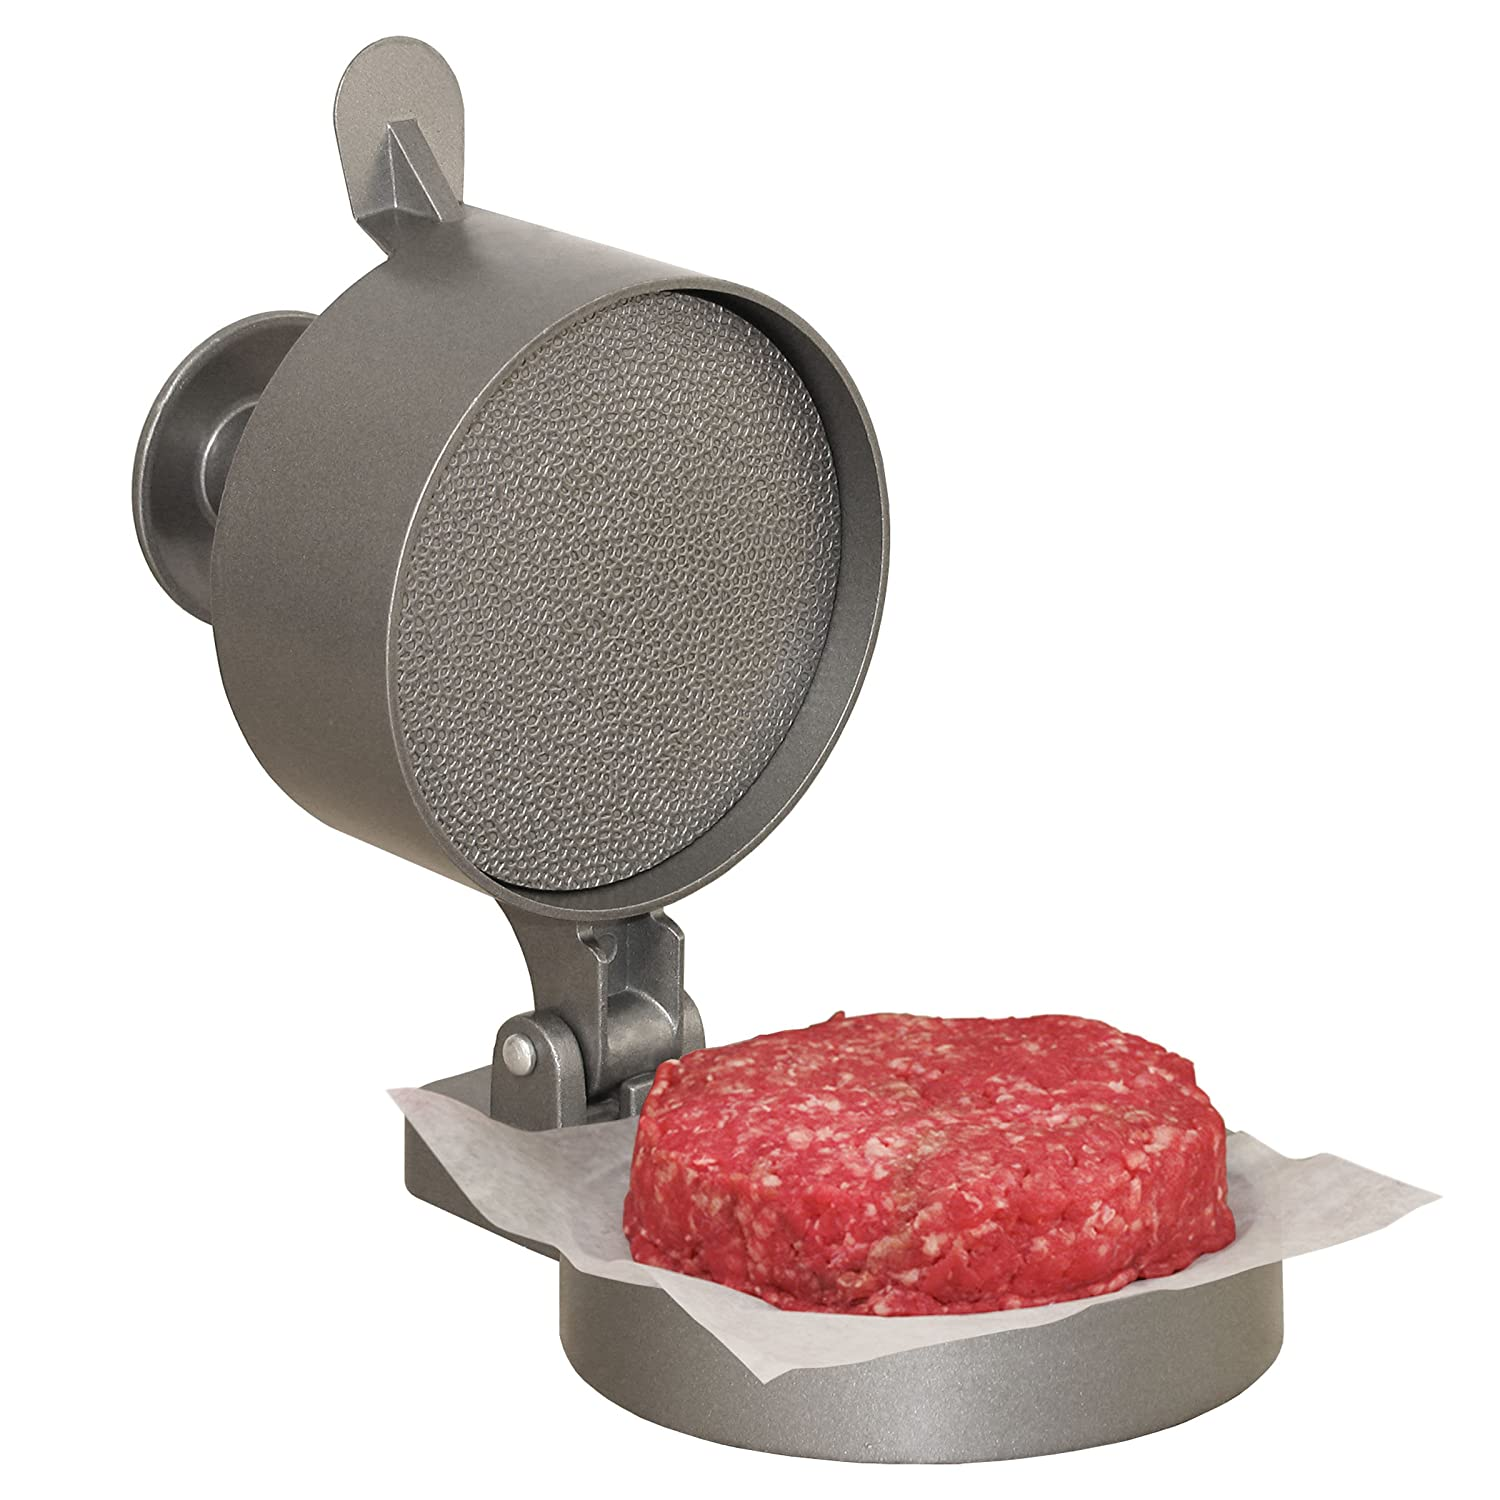 Best Burger Press 2019: Top 5+ Recommended 4